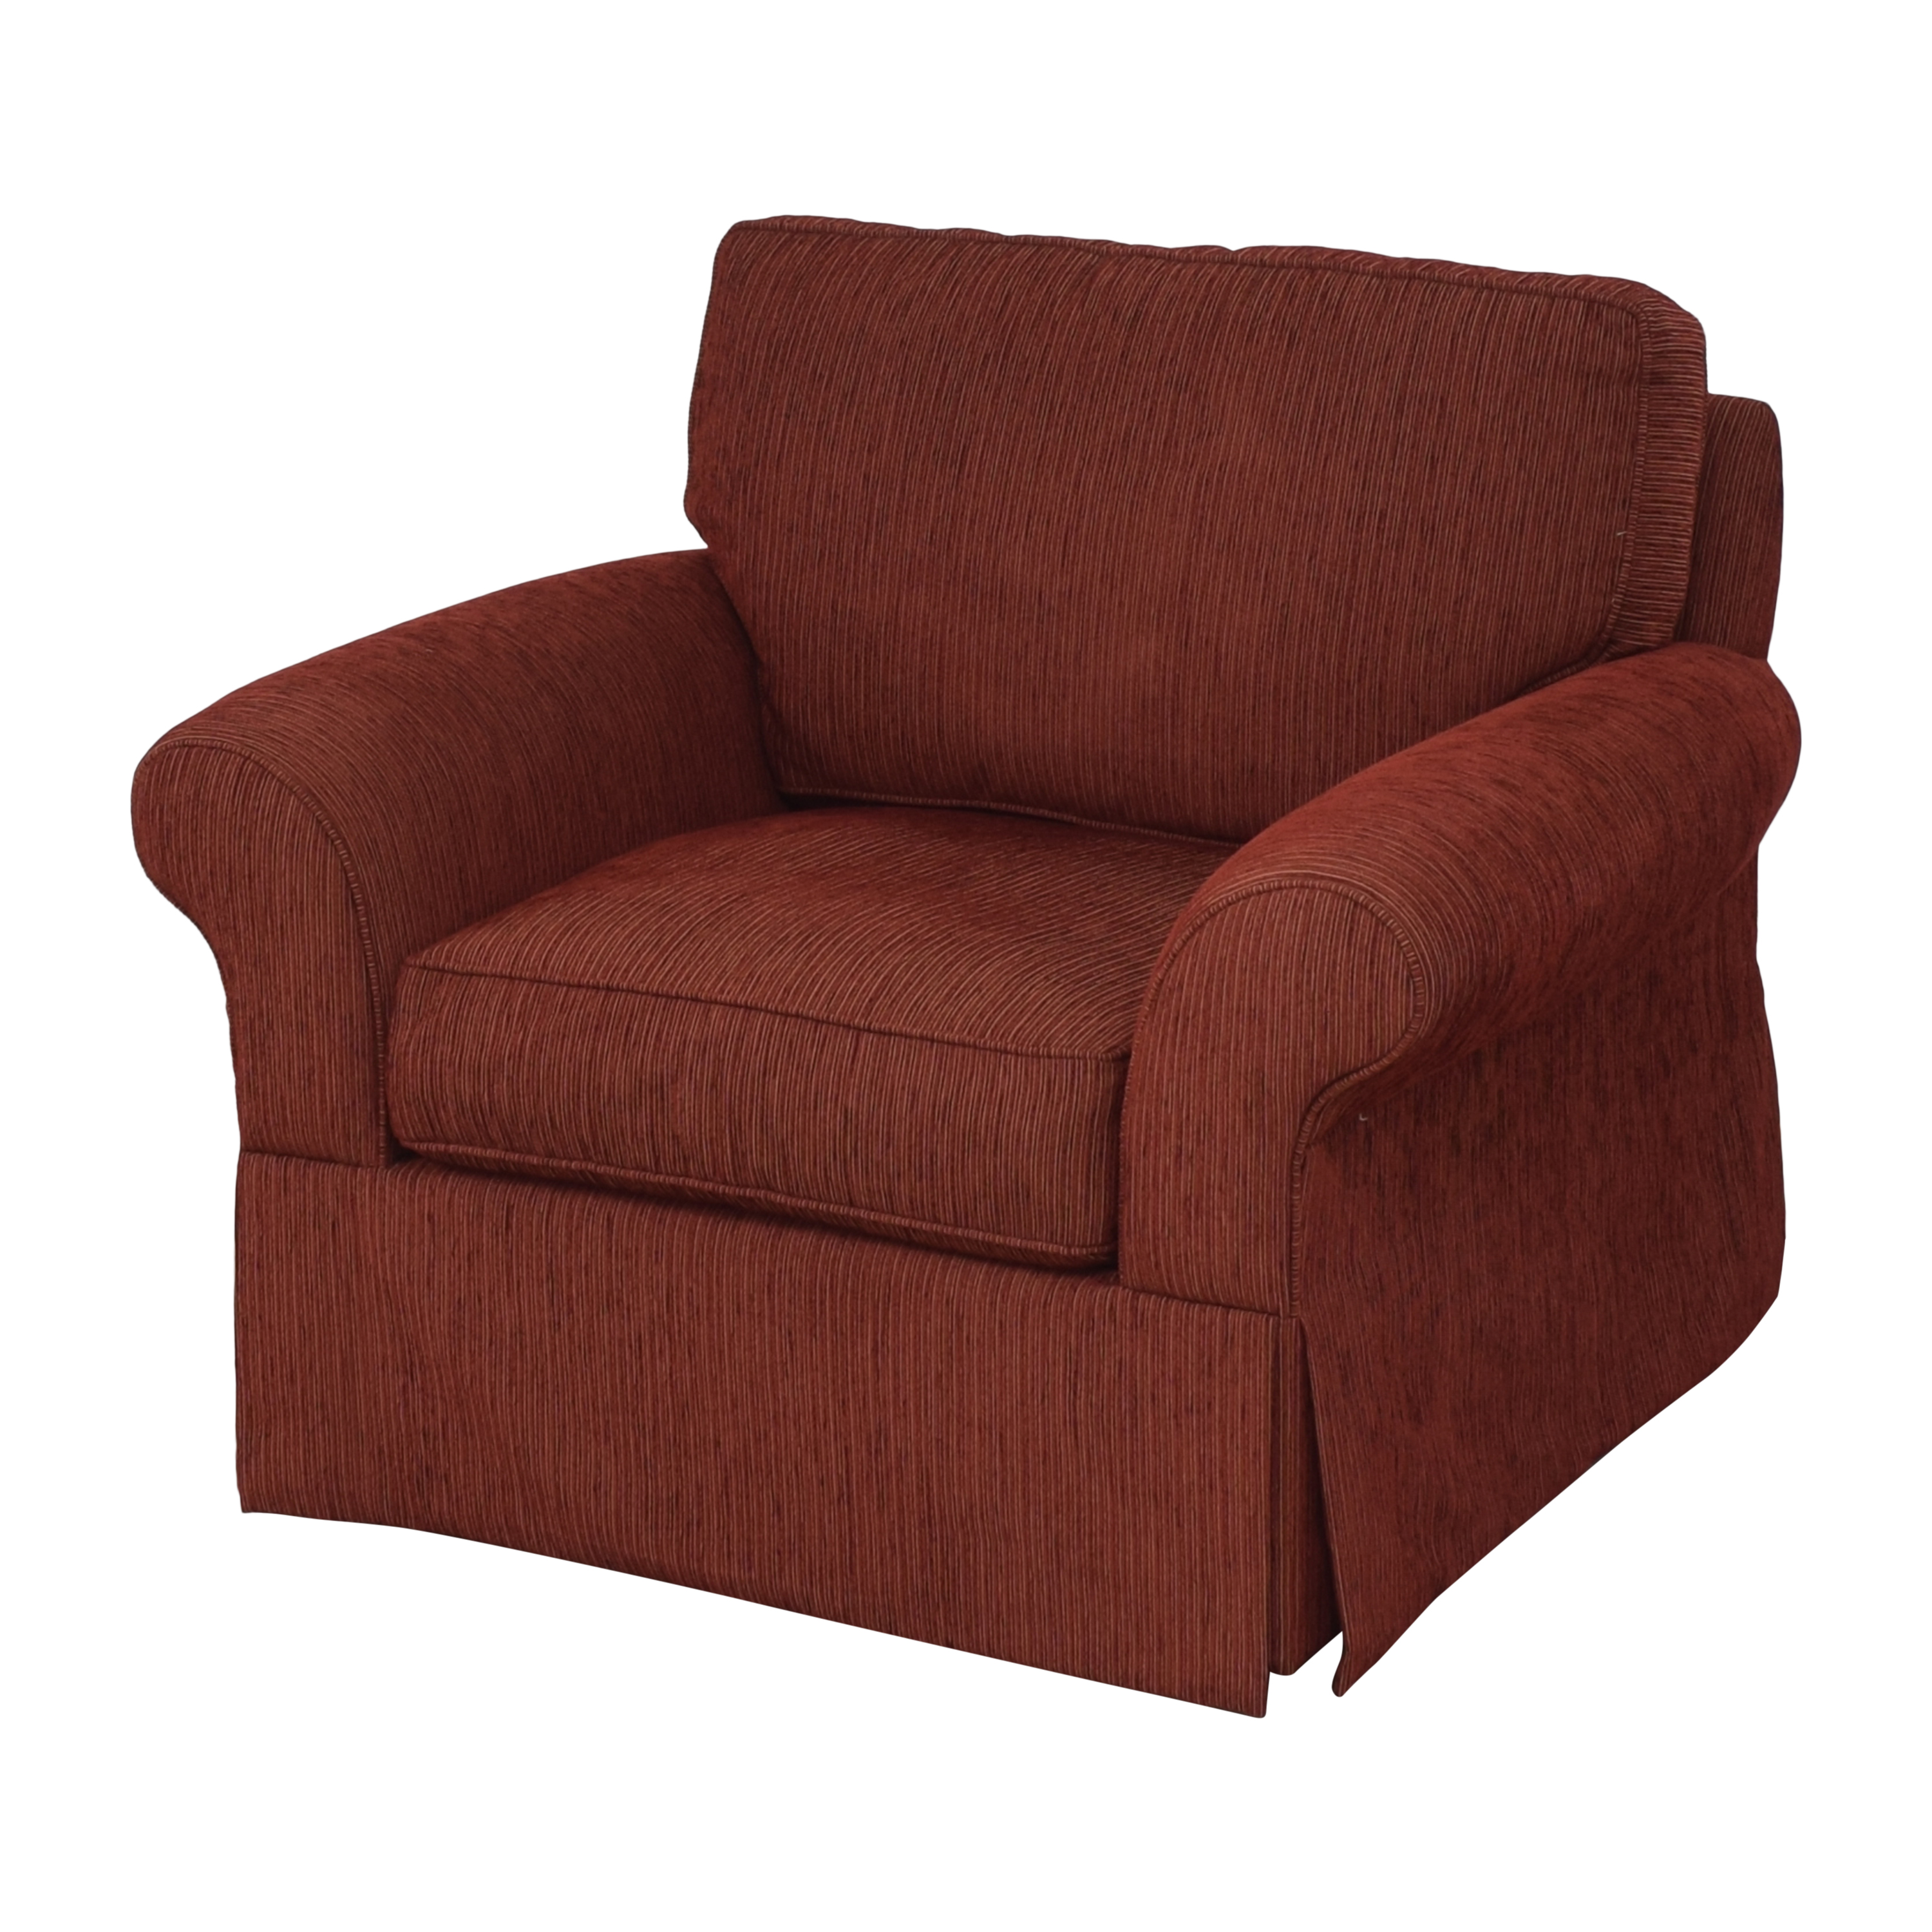 Crate & Barrel Crate & Barrel Skirted Roll Arm Accent Chair red